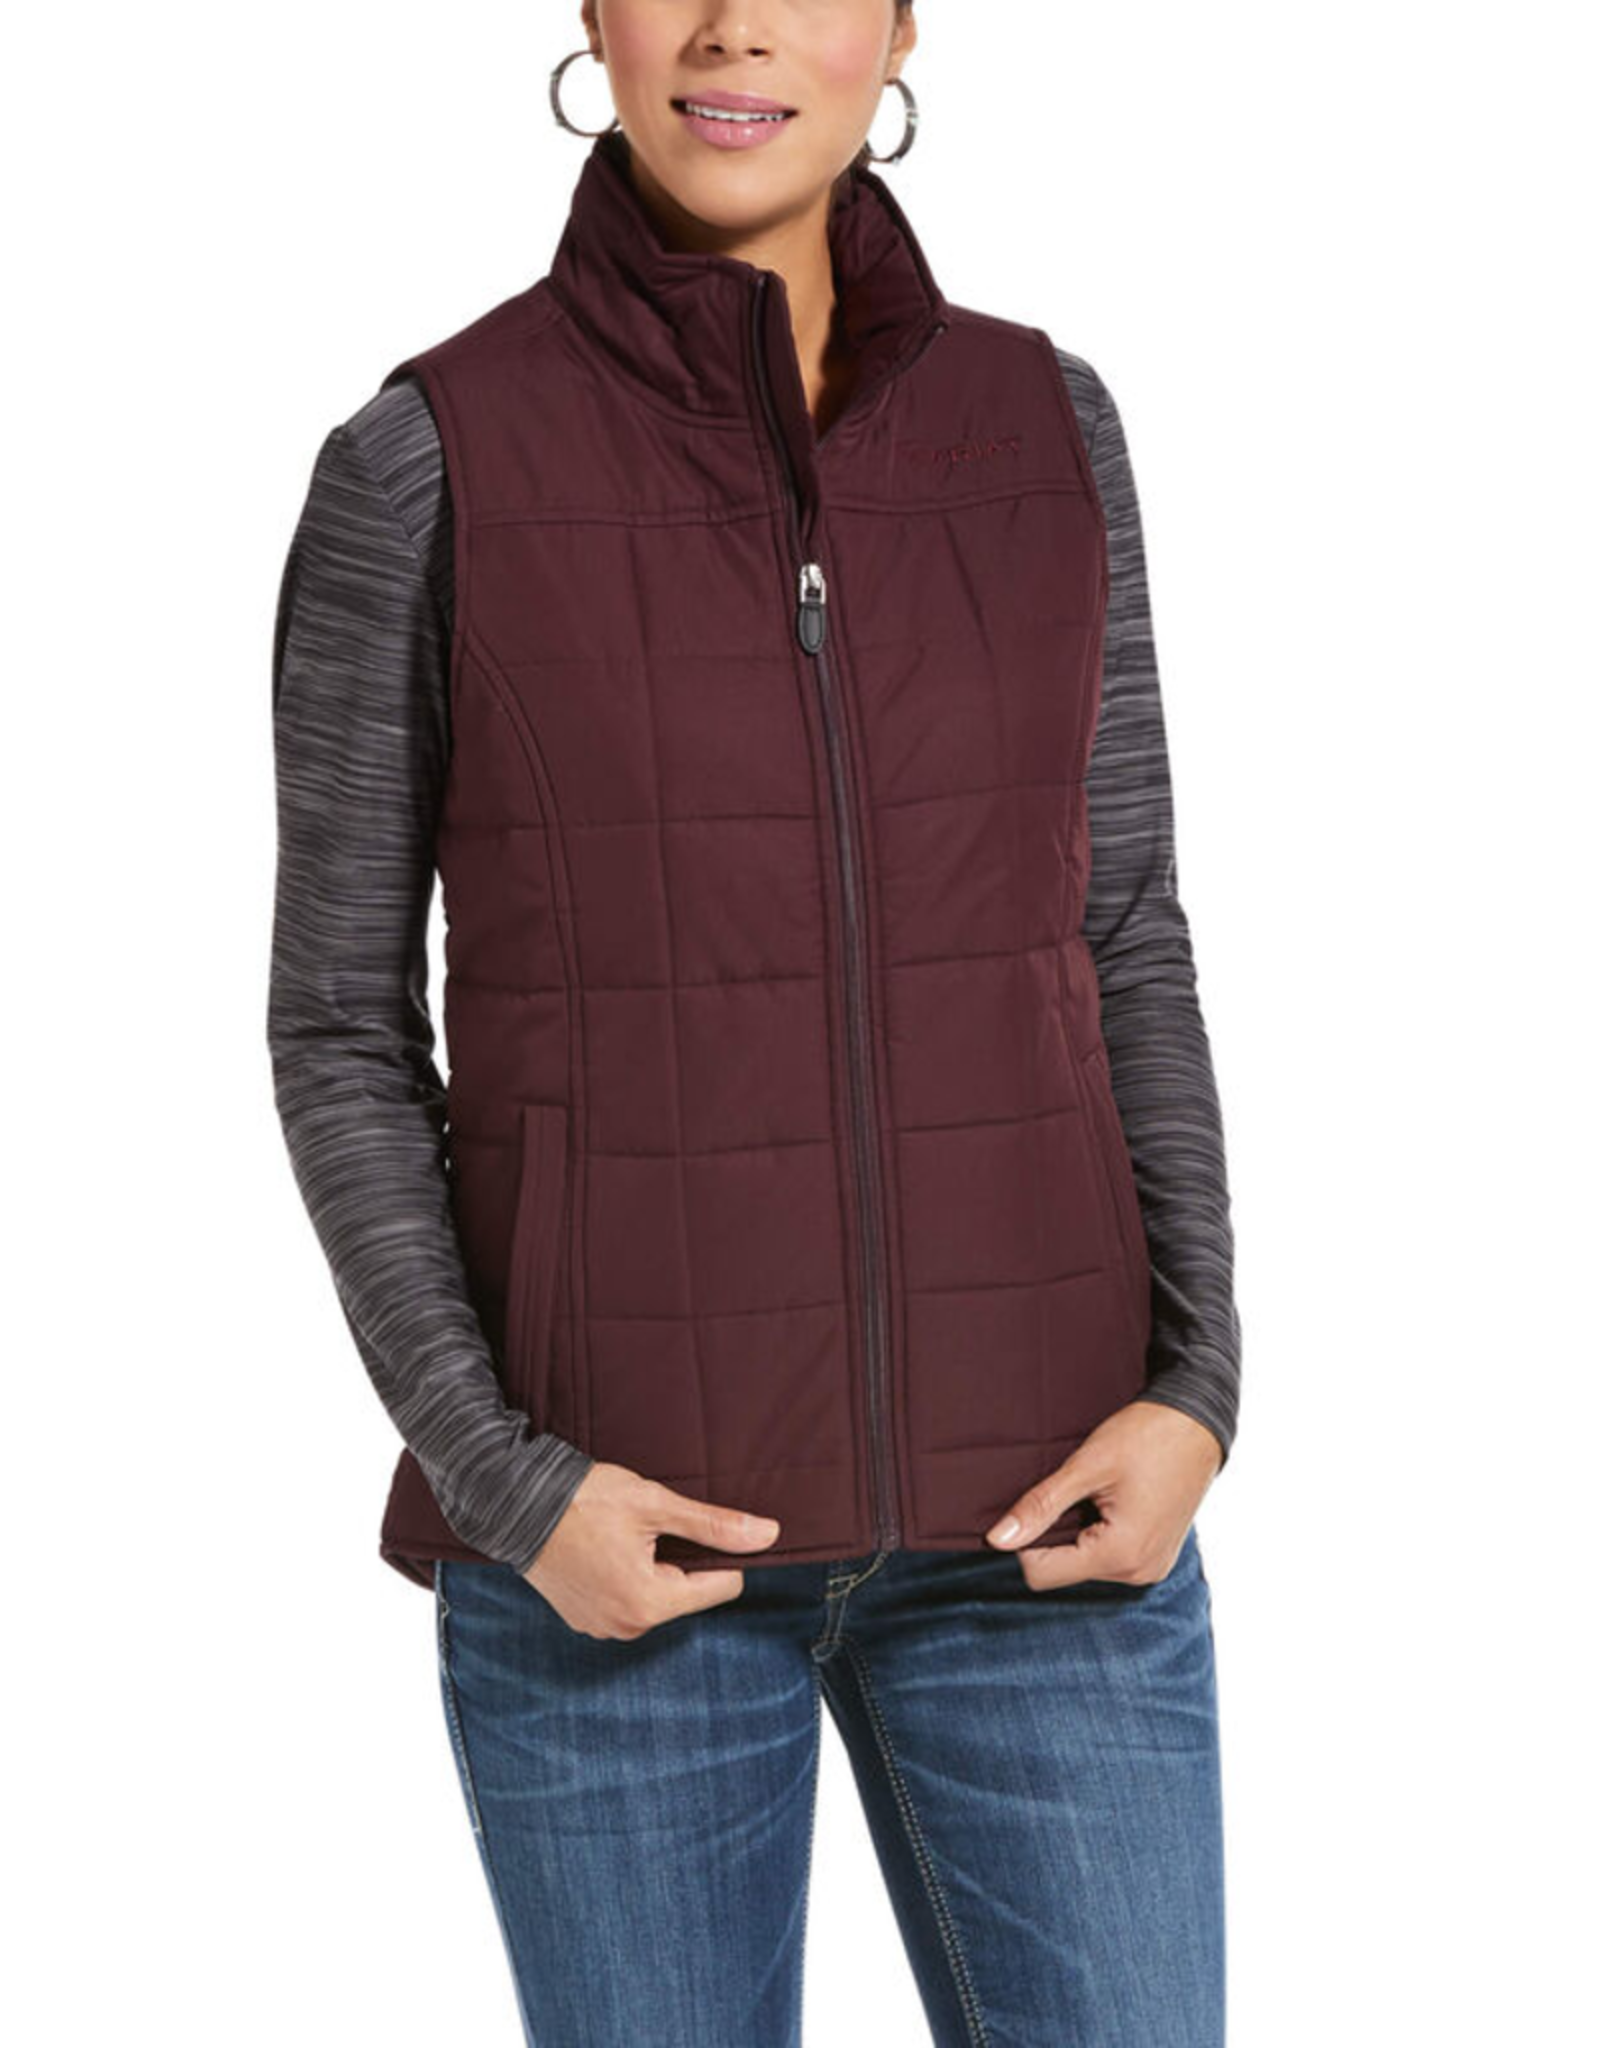 Ariat Ariat REAL Crius Conceal Carry Vest